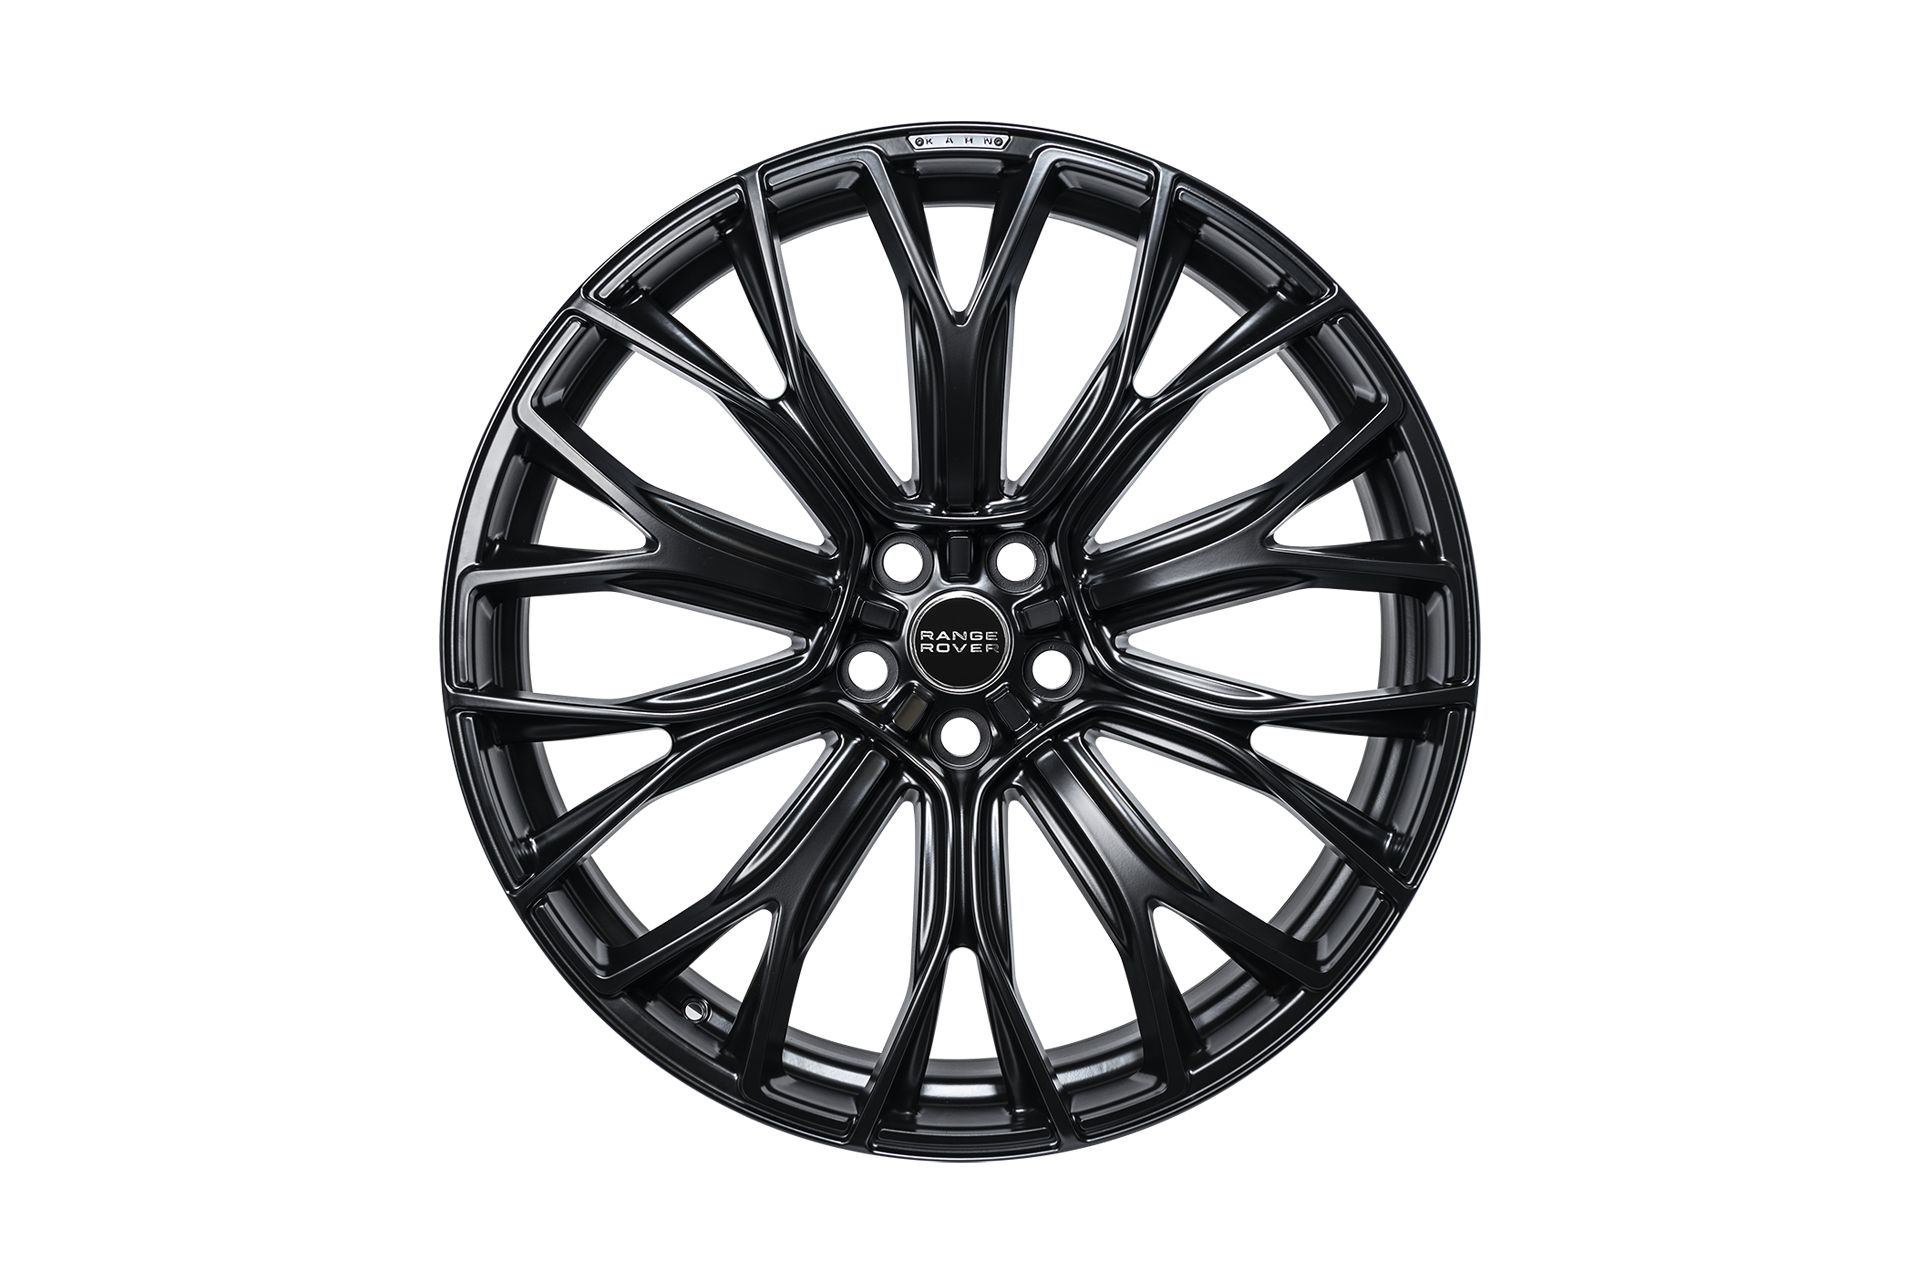 Range Rover Sport (2013-2018) Type 25 Rs-Forged Alloy Wheels Image 4349